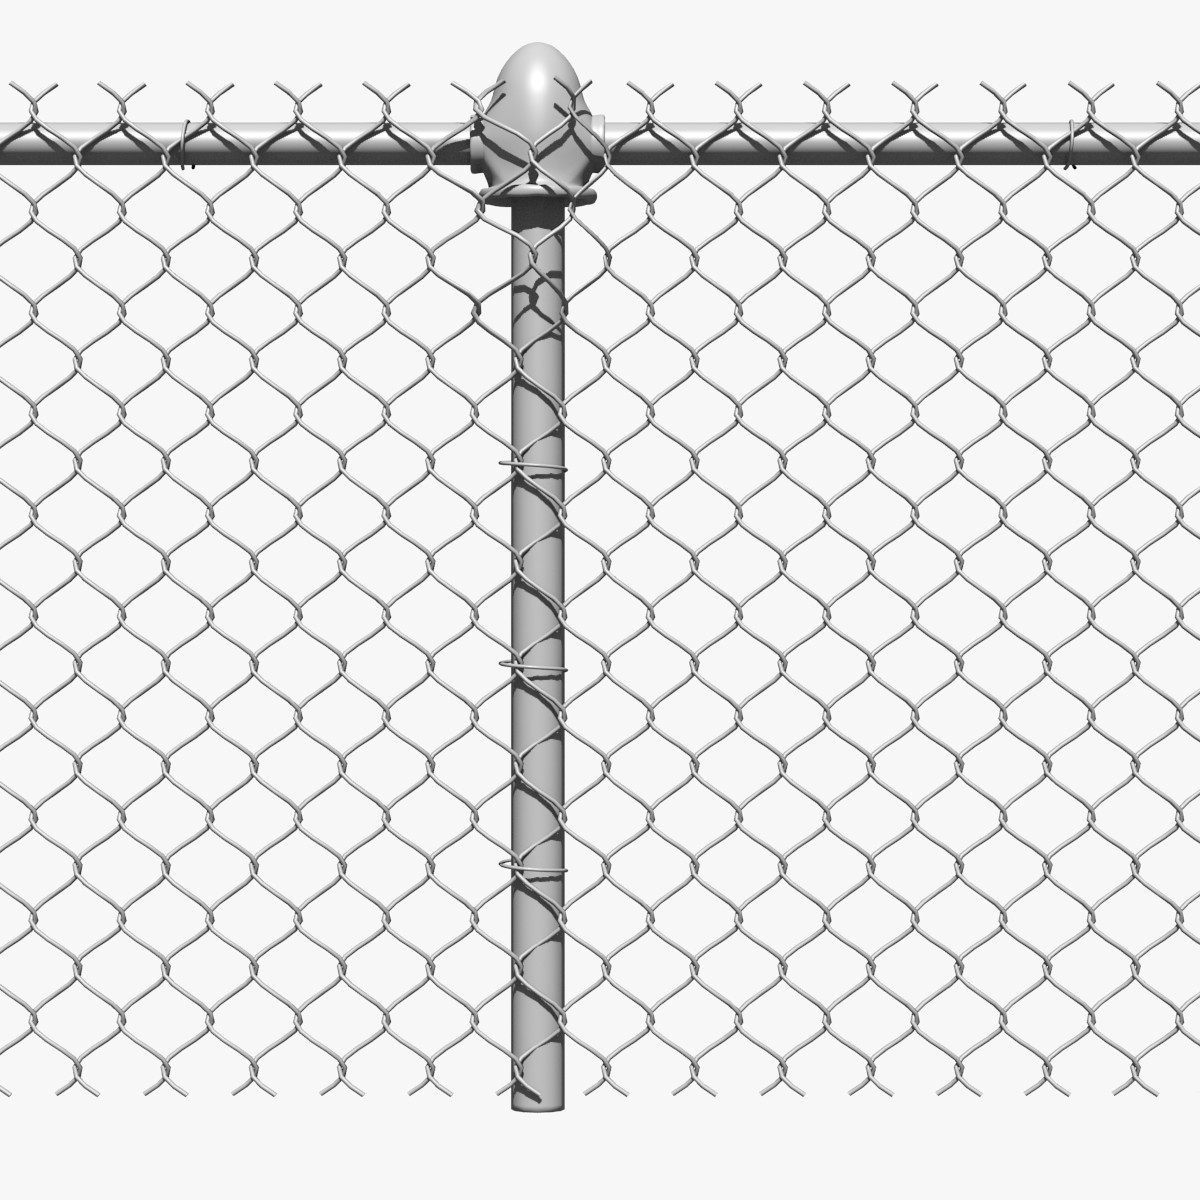 Chain Link Drawing At Free For Personal Use Electric Fence Schematic Fences 1200x1200 Texture Seamless